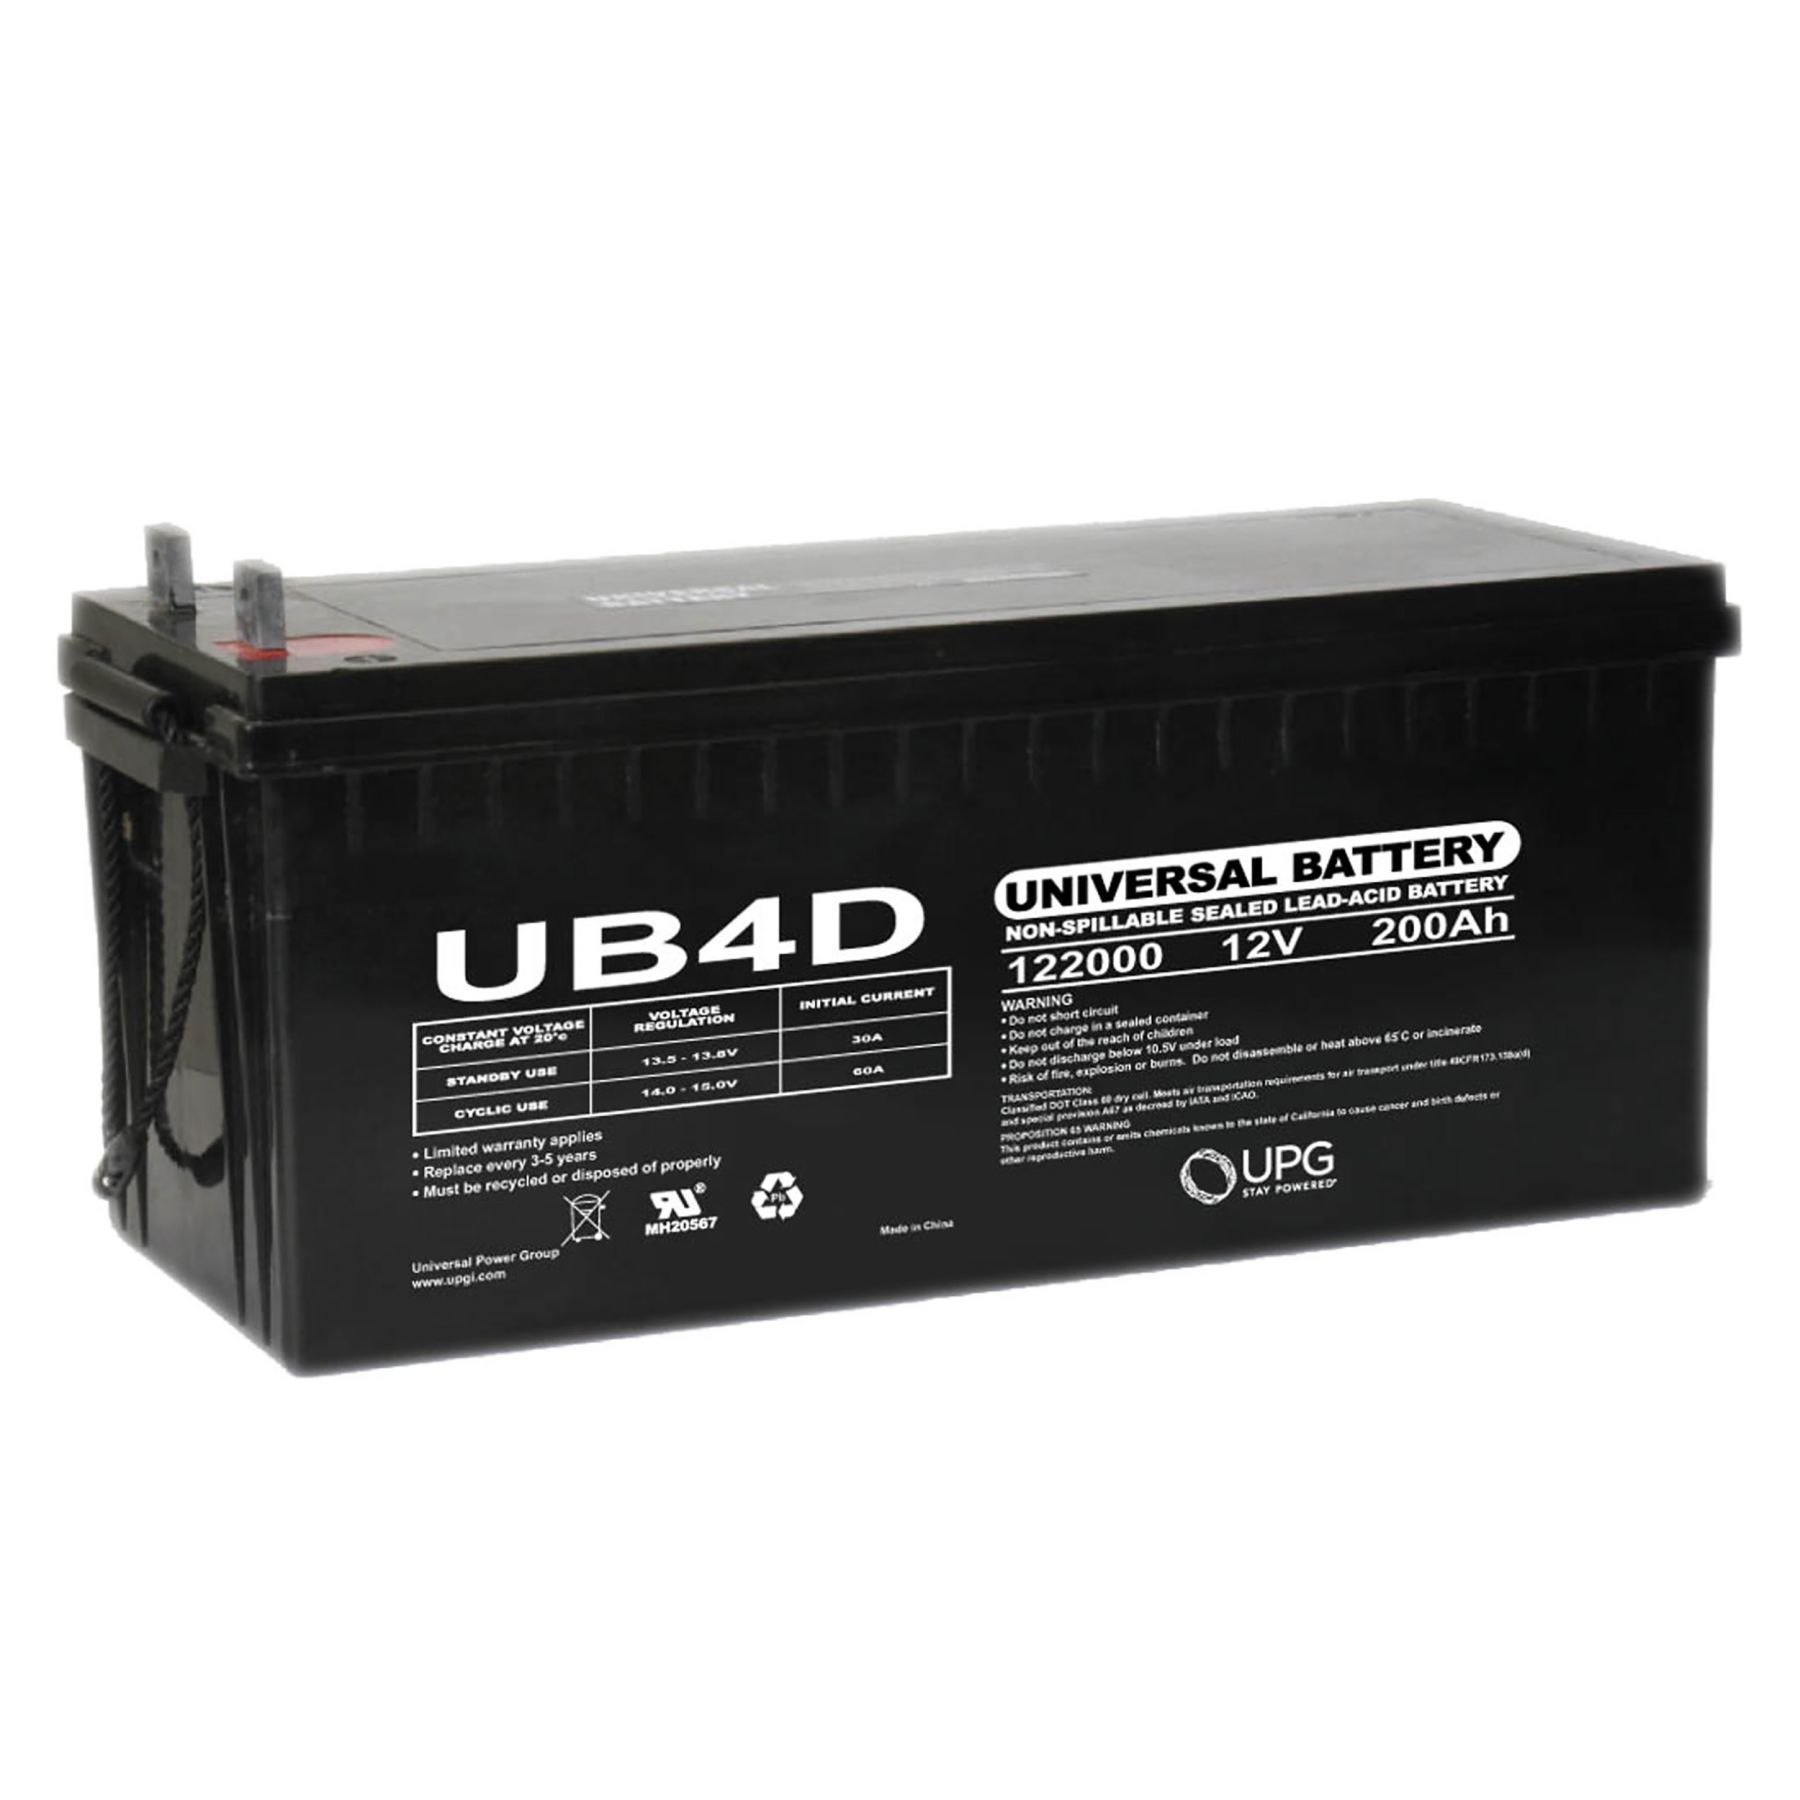 4d Agm Battery Ub4d 12v 200 Ah As Low As 337 95